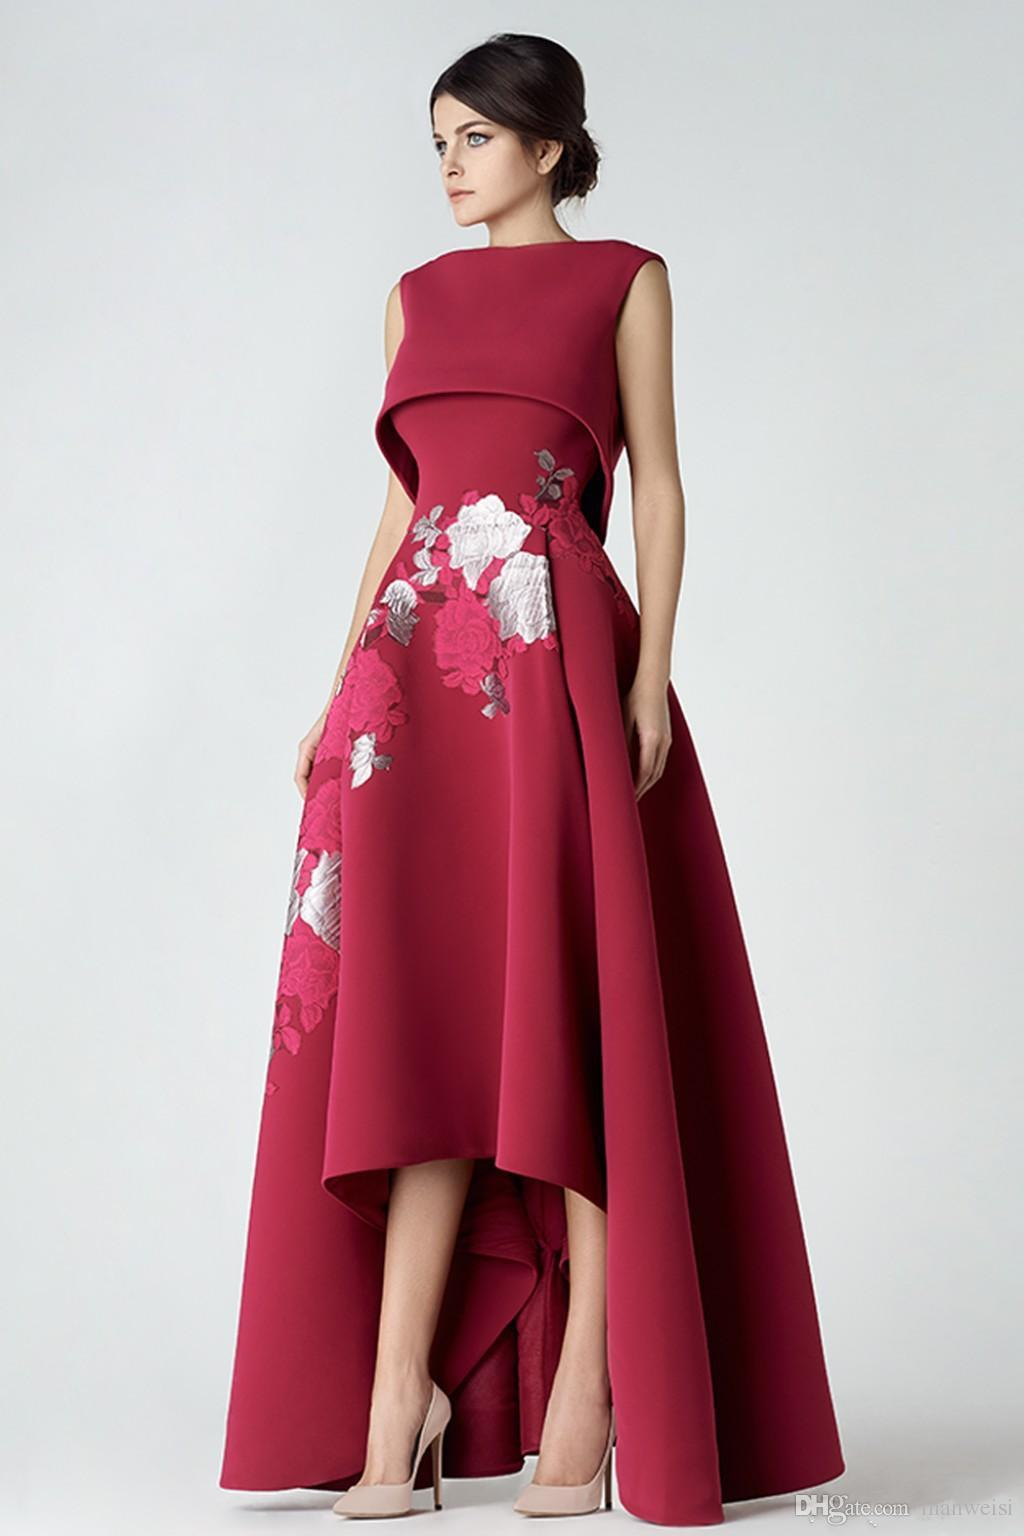 2018 New Red High Low Prom Dresses Saiid Kobeisy Jewel Neckline A Line Party Gowns Cheap Appliqued Evening Wear For Women